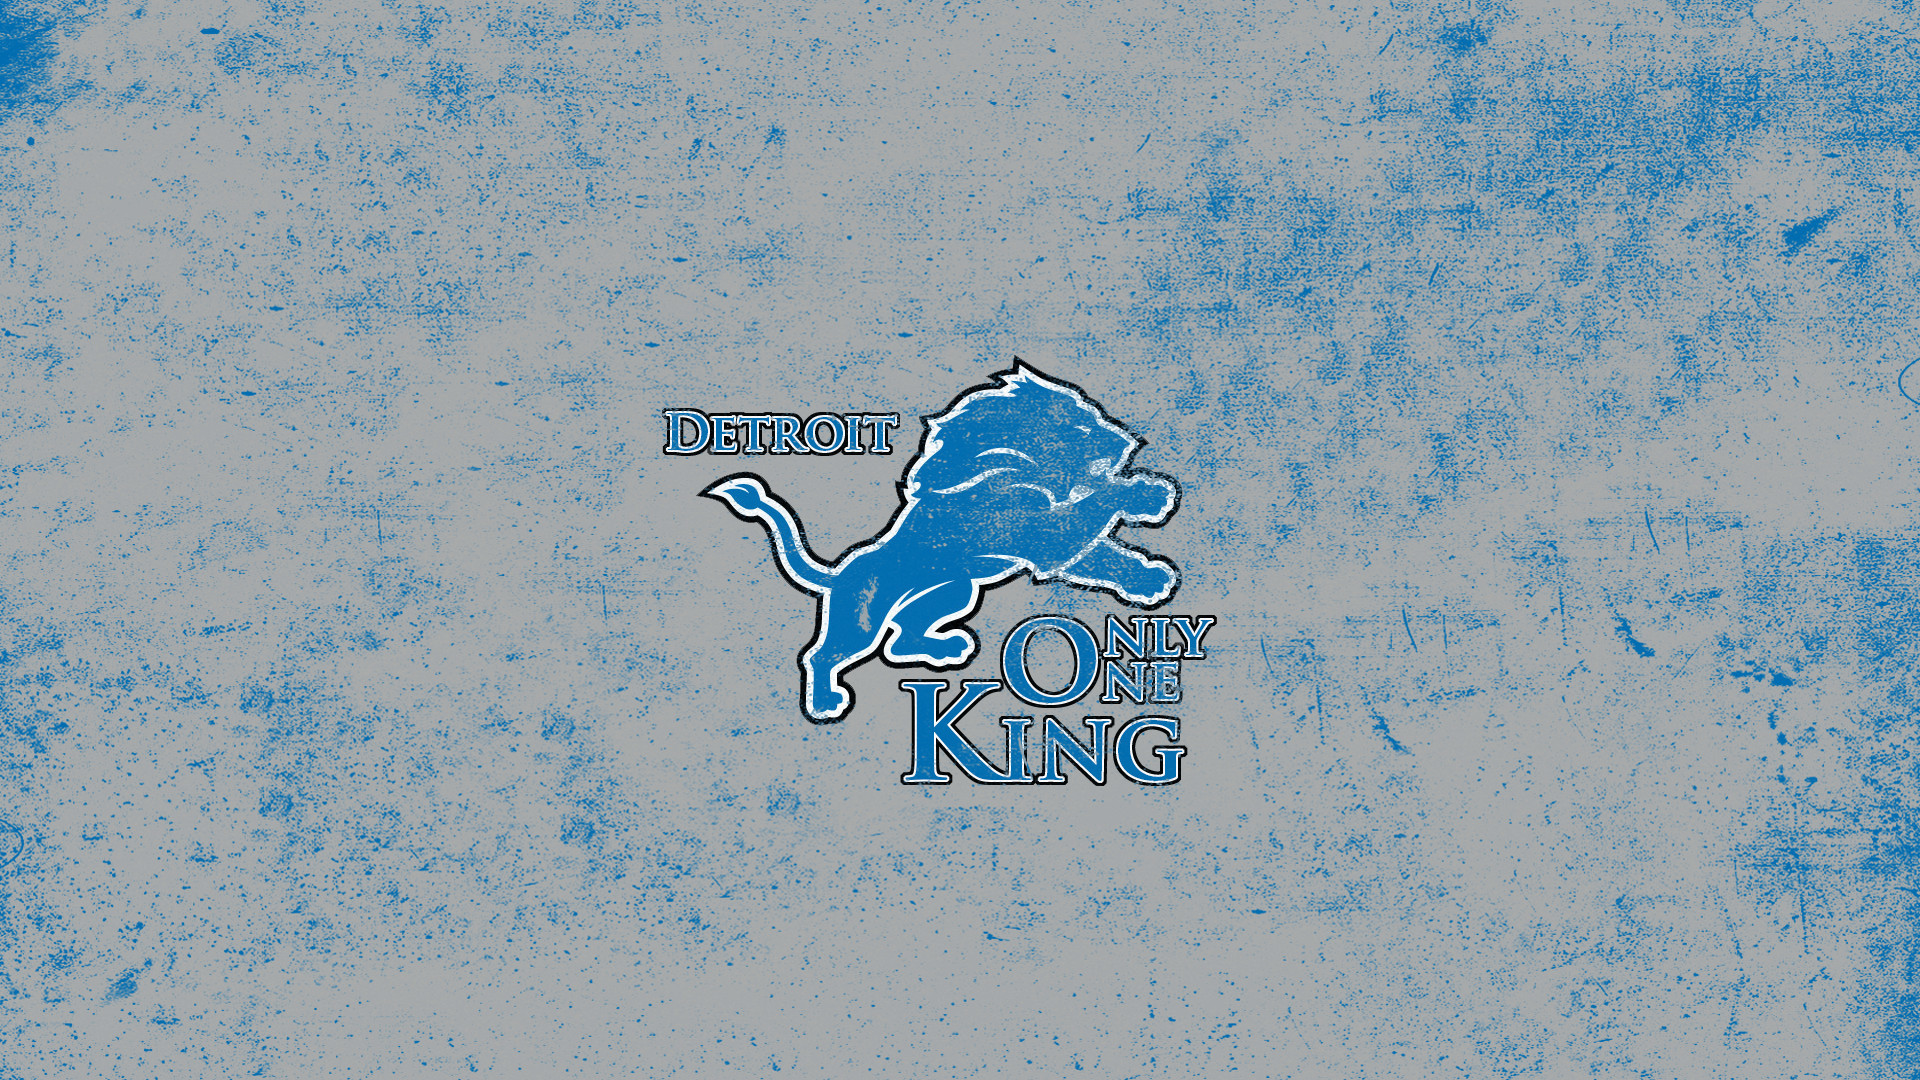 Detroit Lions Wallpapers | HD Wallpapers Early